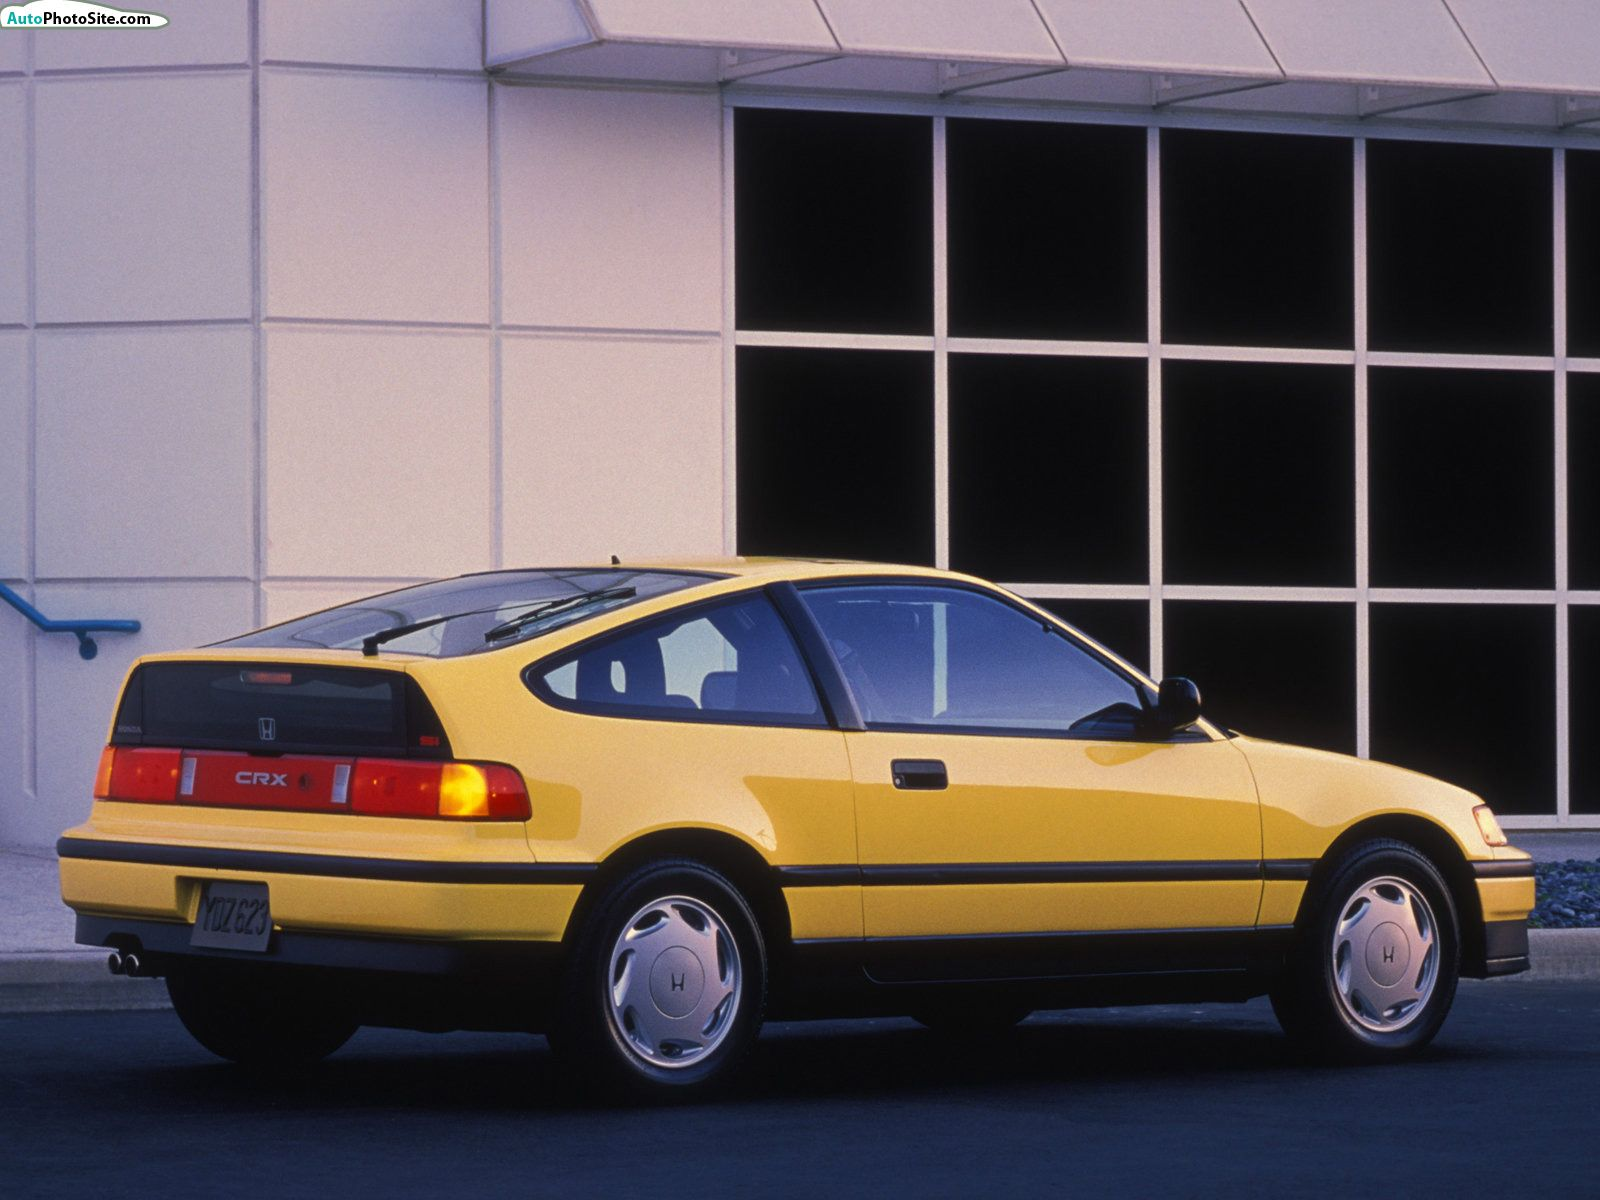 small resolution of honda civic crx si 1988 review top 10 photo video and pictures